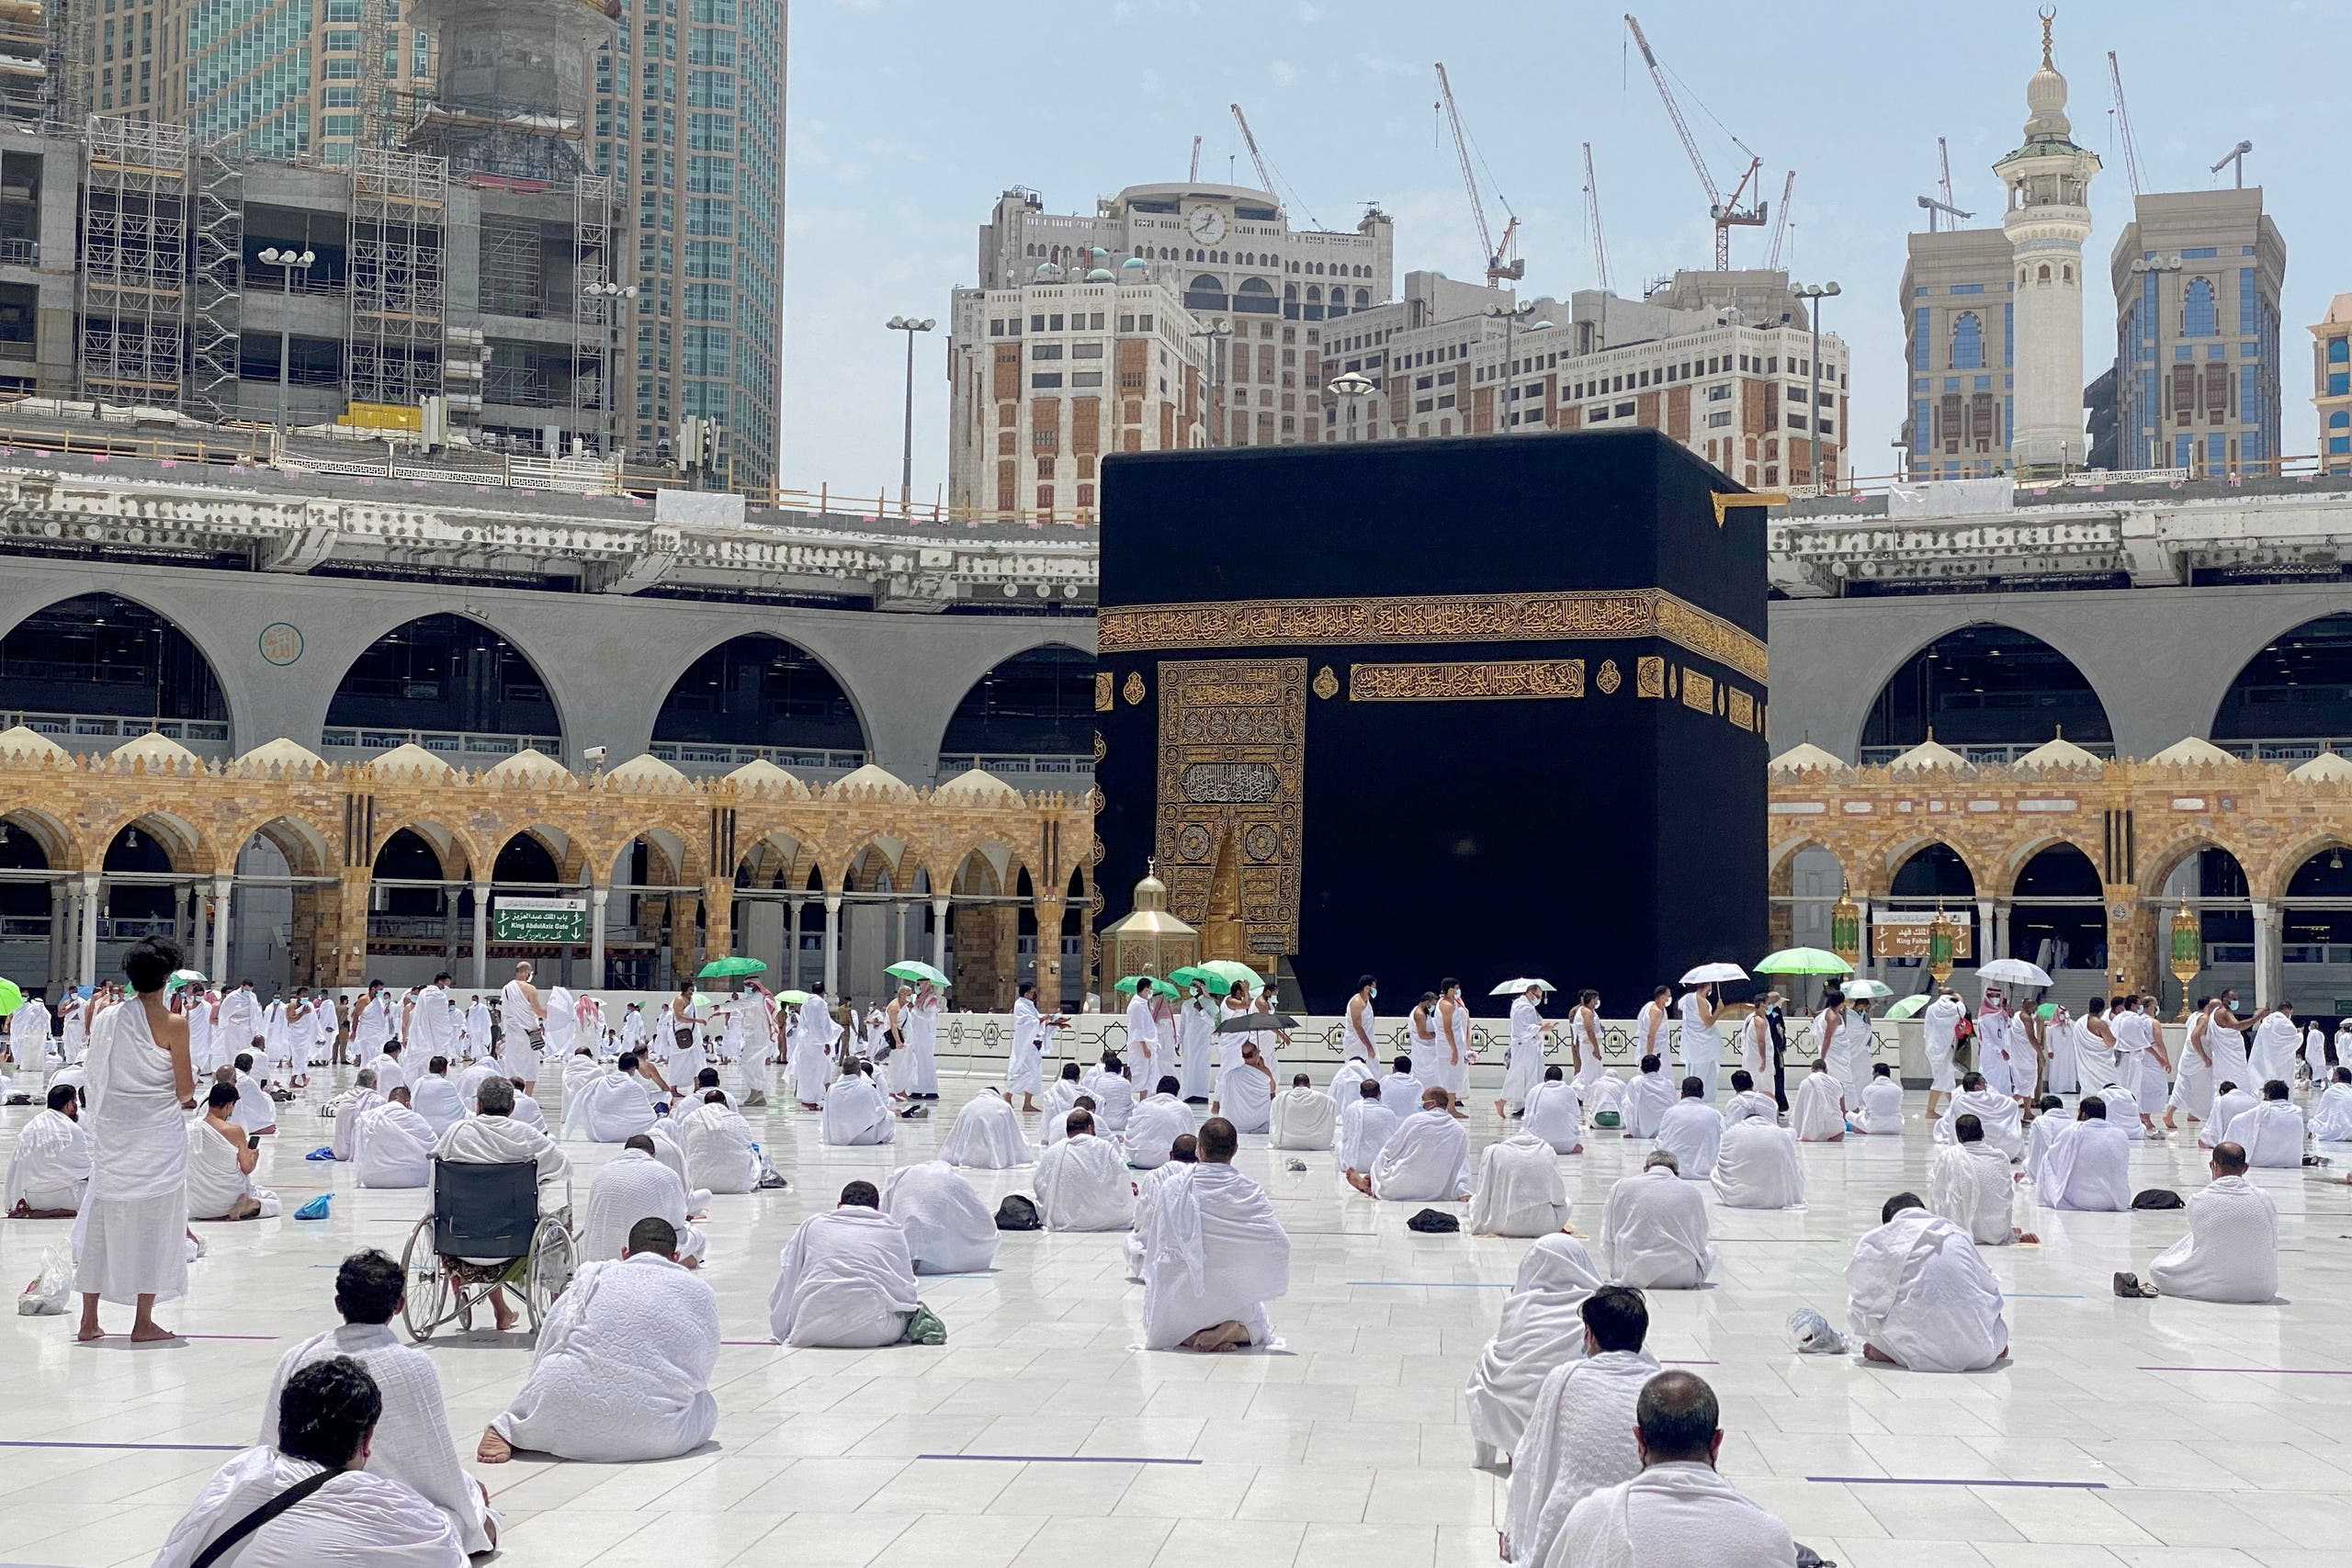 Muslims perform Friday prayers at the Grand Mosque during the holy month of Ramadan, in the holy city of Mecca, Saudi Arabia. (Reuters)